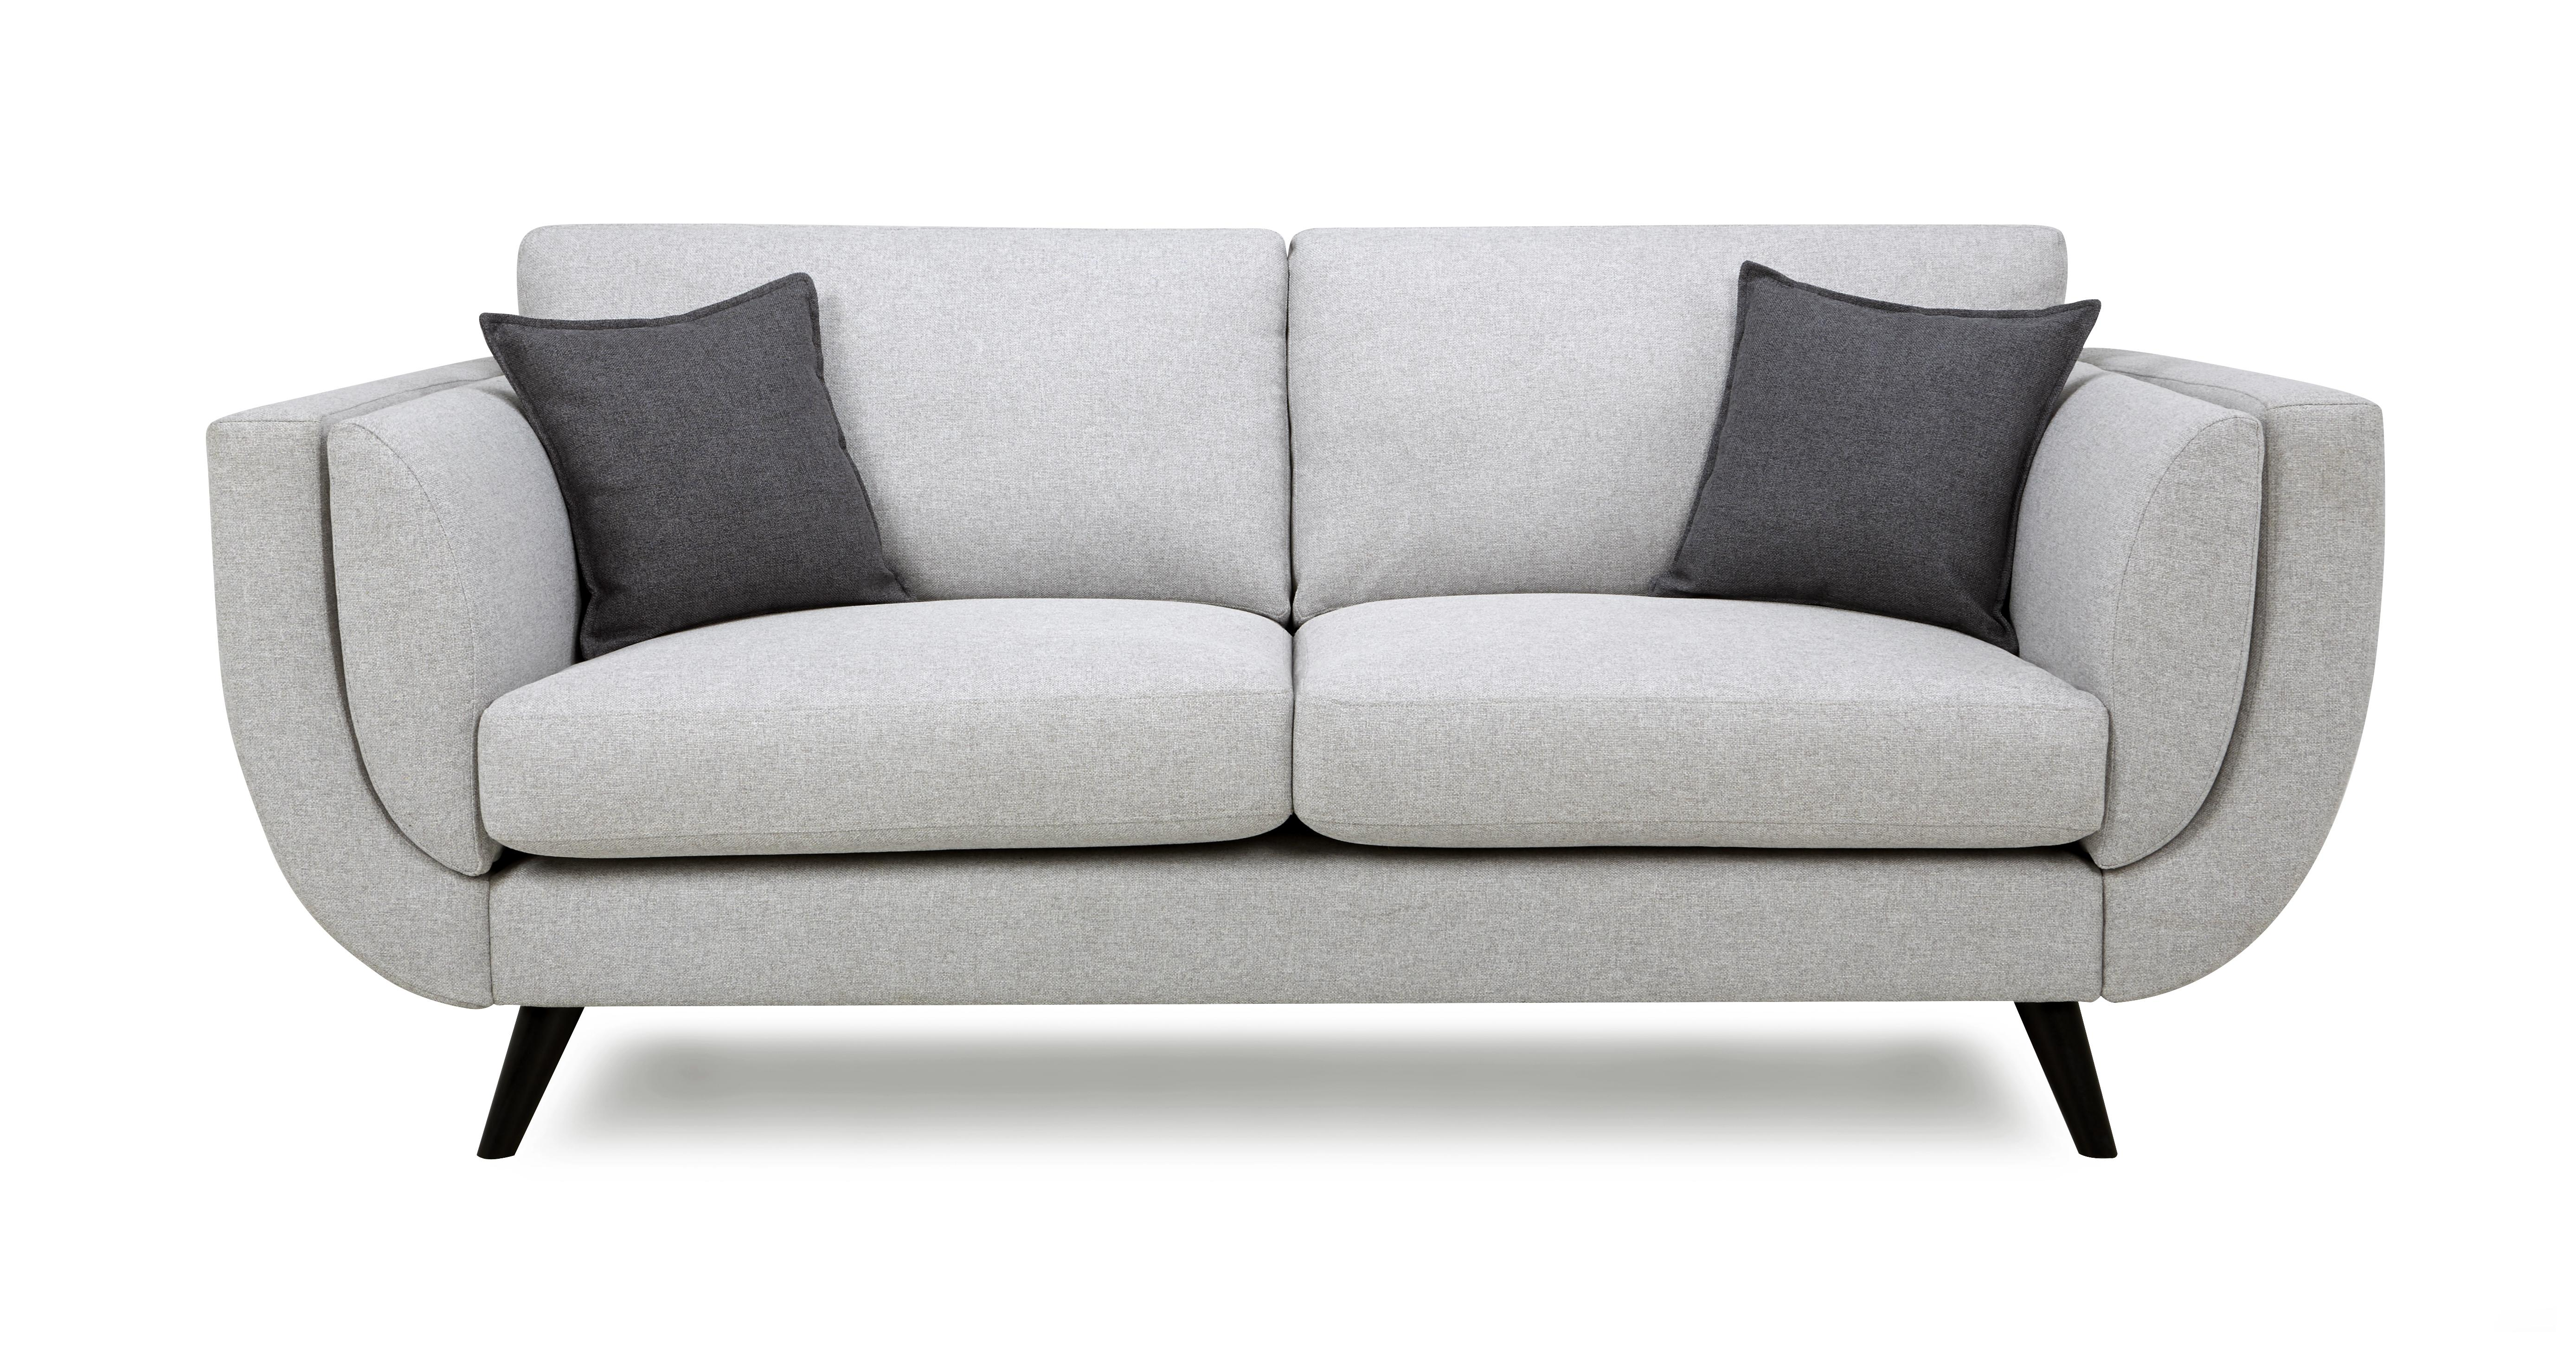 Zuri Large Sofa DFS